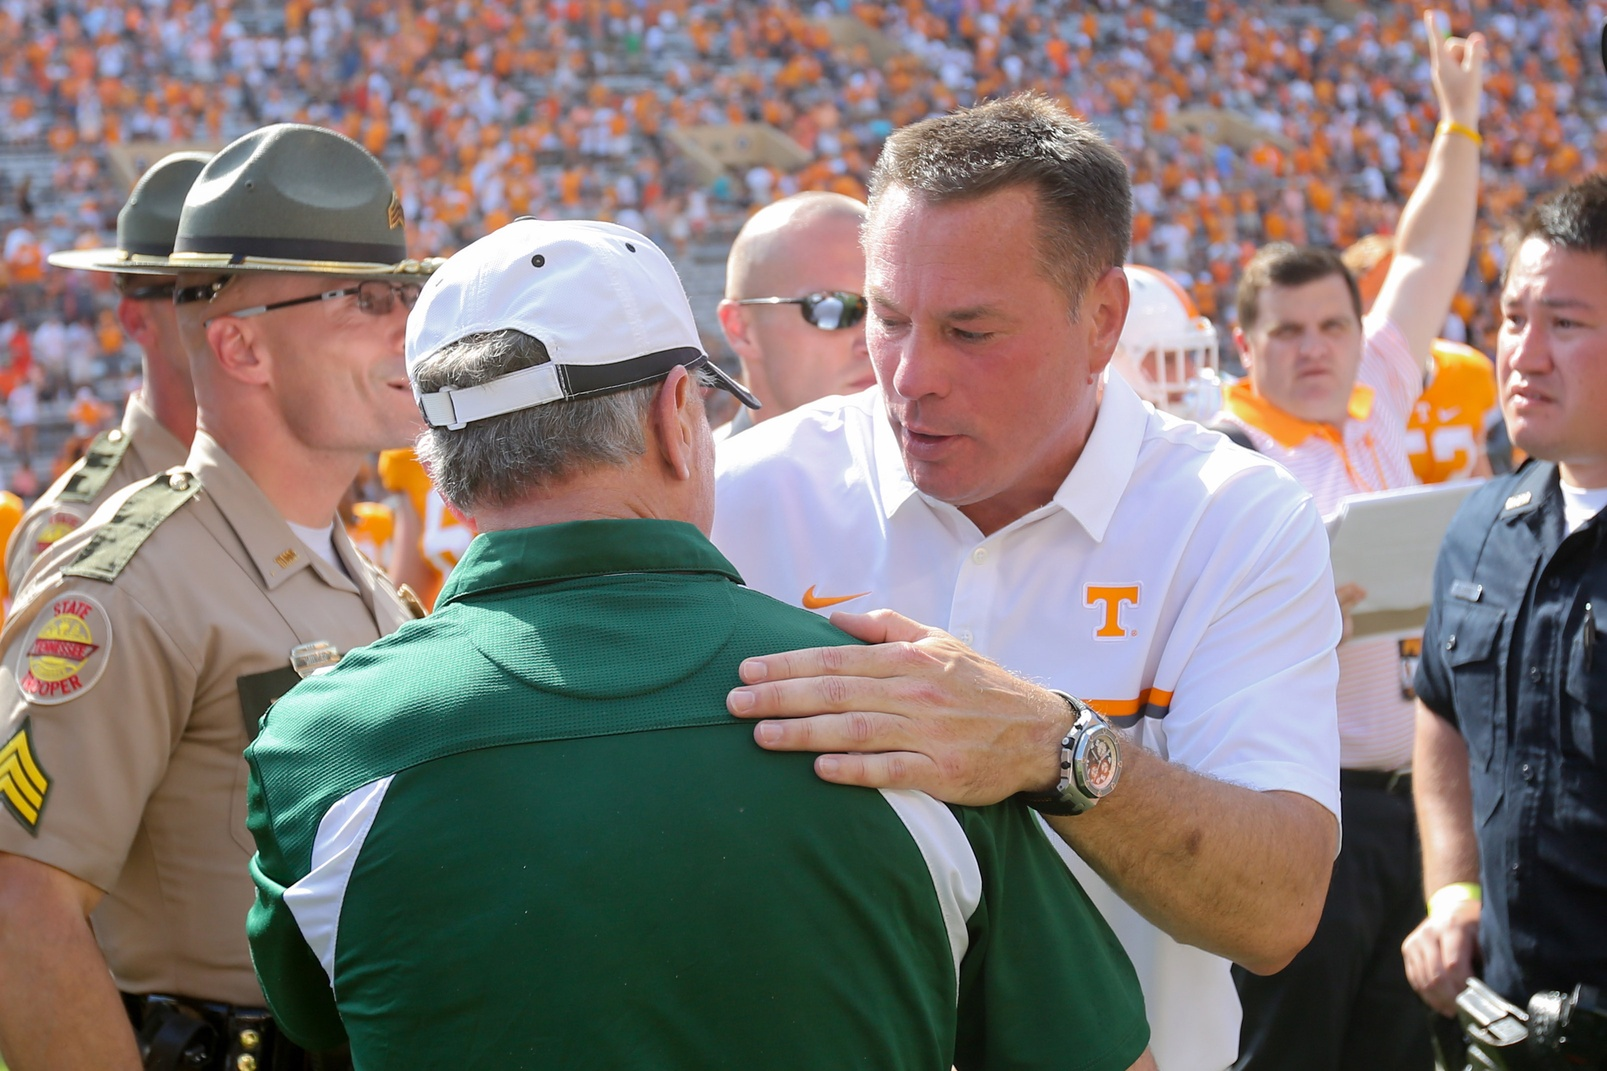 Sep 17, 2016; Knoxville, TN, USA; Tennessee Volunteers head coach Butch Jones and Ohio Bobcats head coach Frank Solich meet after the game at Neyland Stadium. Tennessee won 28-19. Mandatory Credit: Randy Sartin-USA TODAY Sports